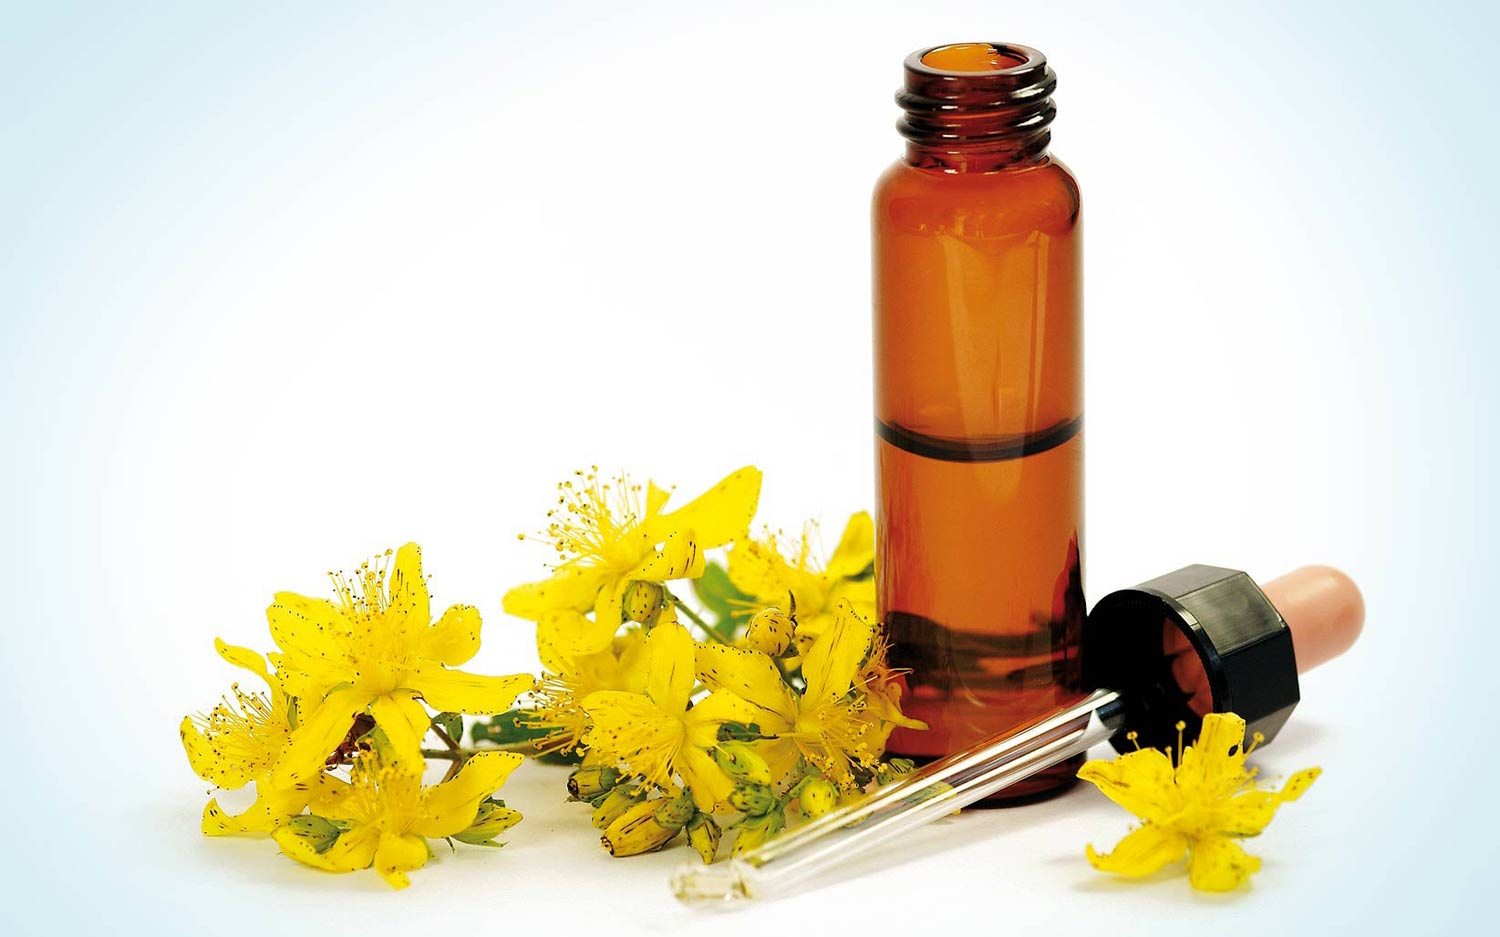 How to Use Bach Flower Remedies